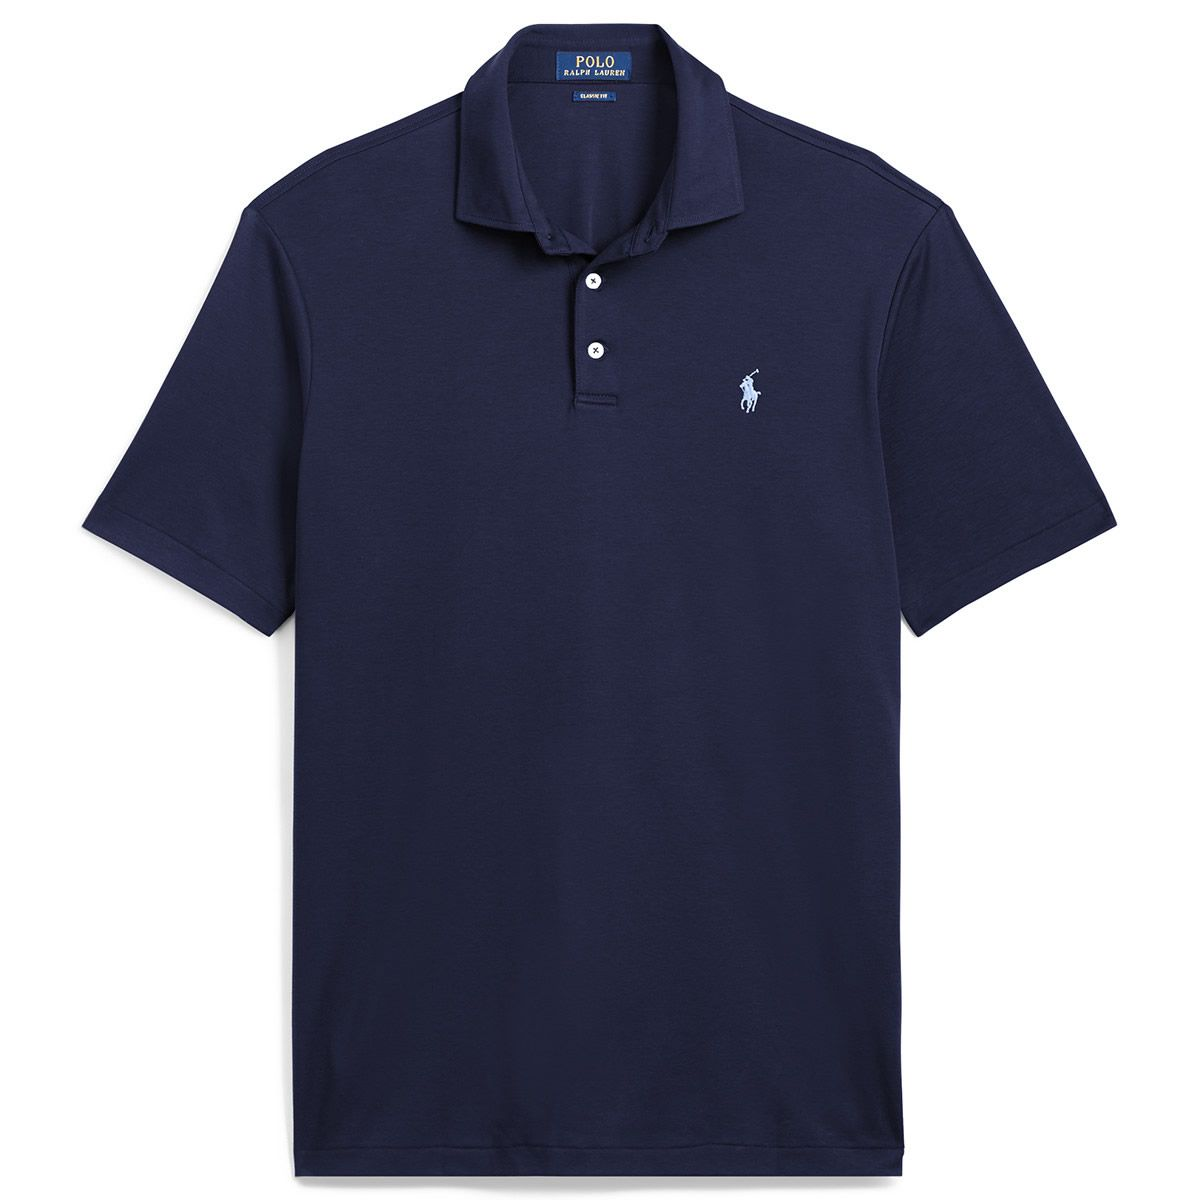 eacb041e5 Polo Ralph Lauren Mens Polo Shirts - Macy s